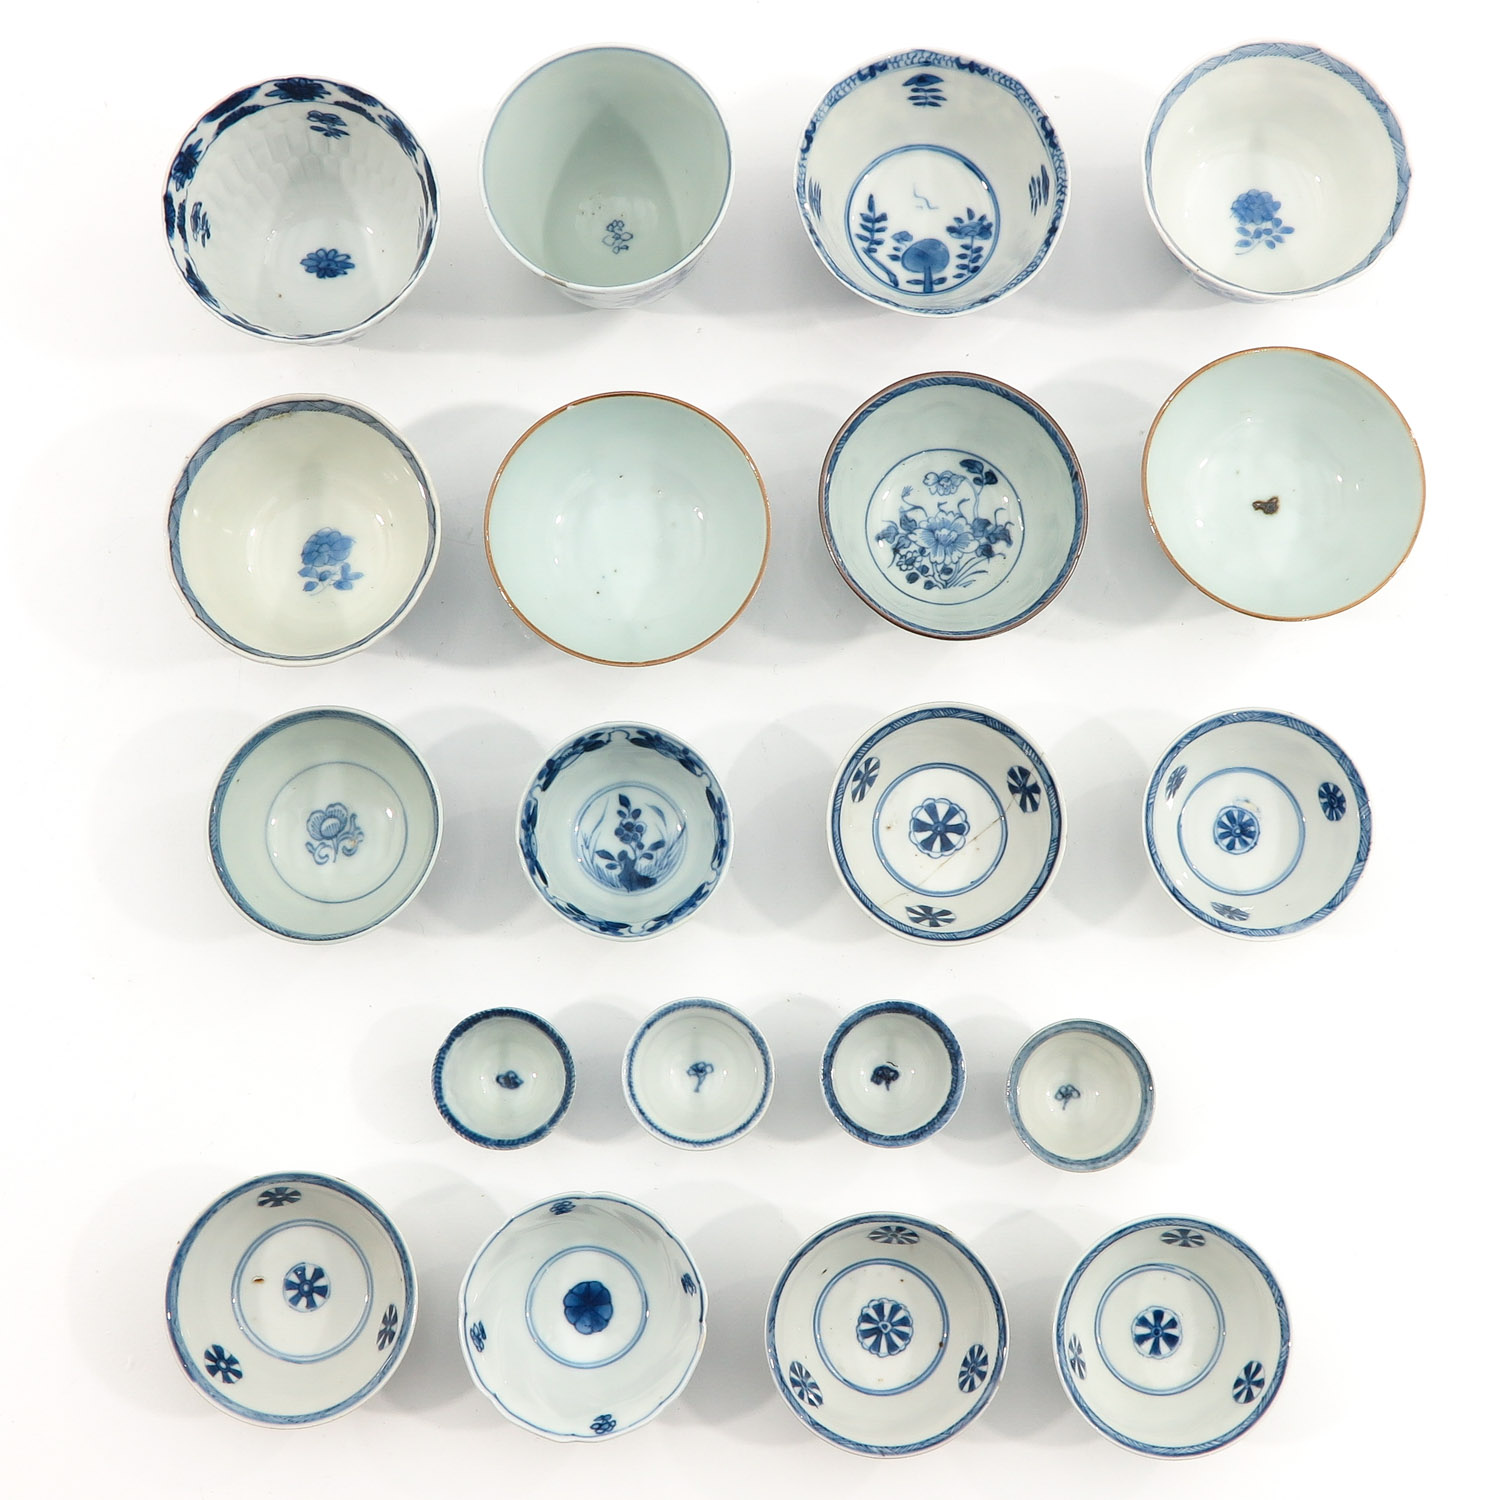 A Collection of 20 Cups - Image 5 of 10